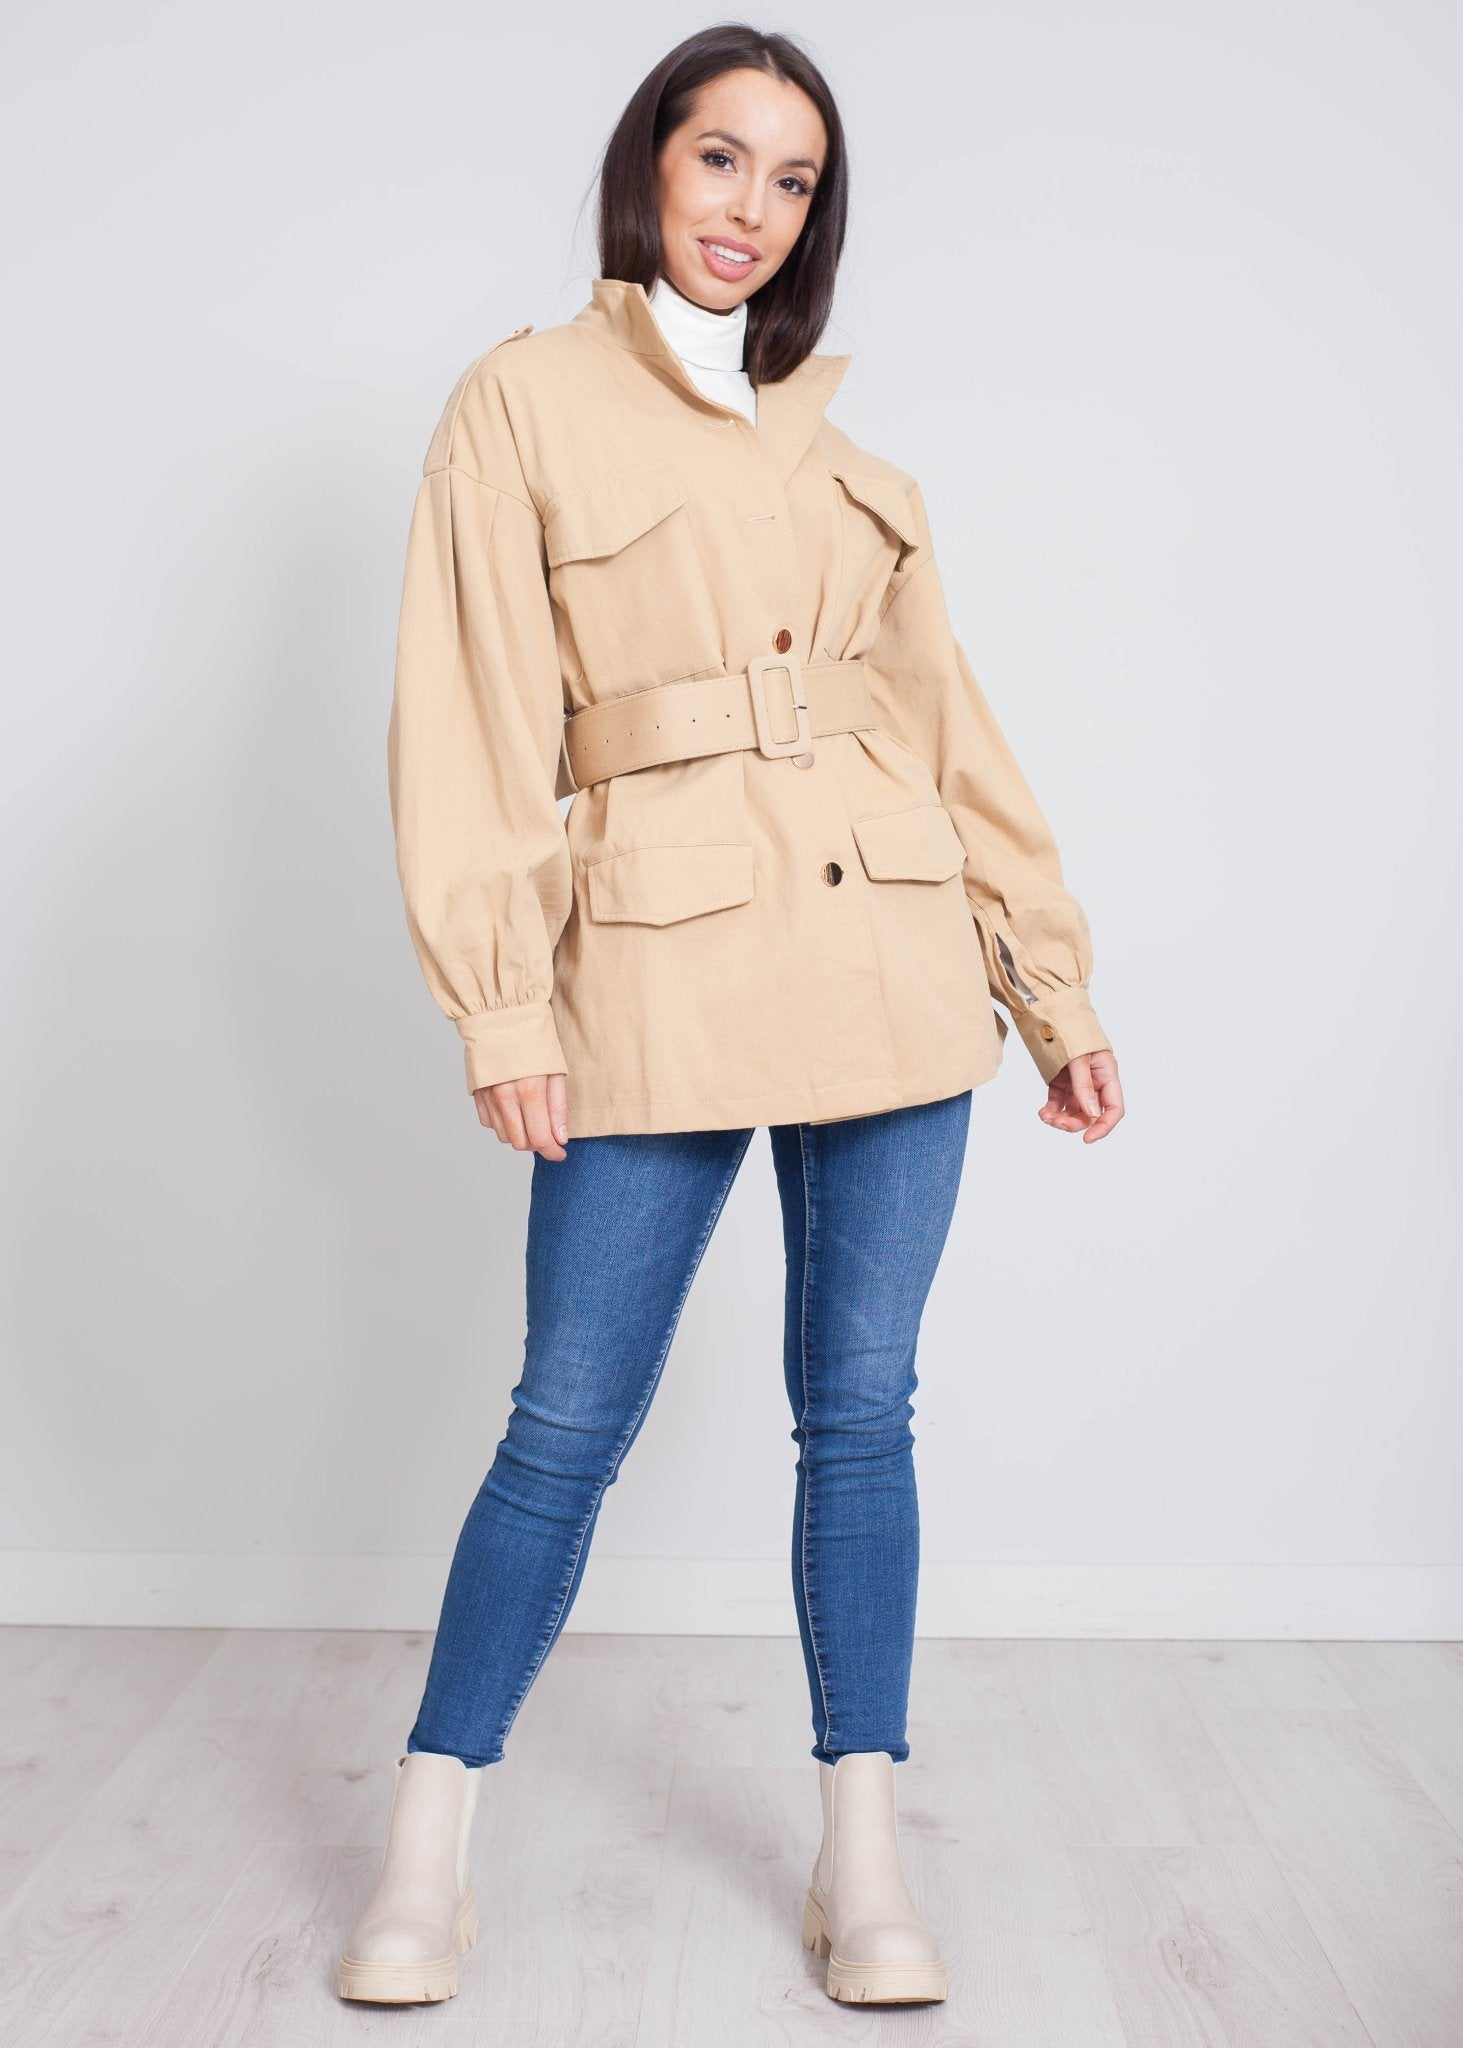 Jayme Belted Utility Jacket In Camel - The Walk in Wardrobe